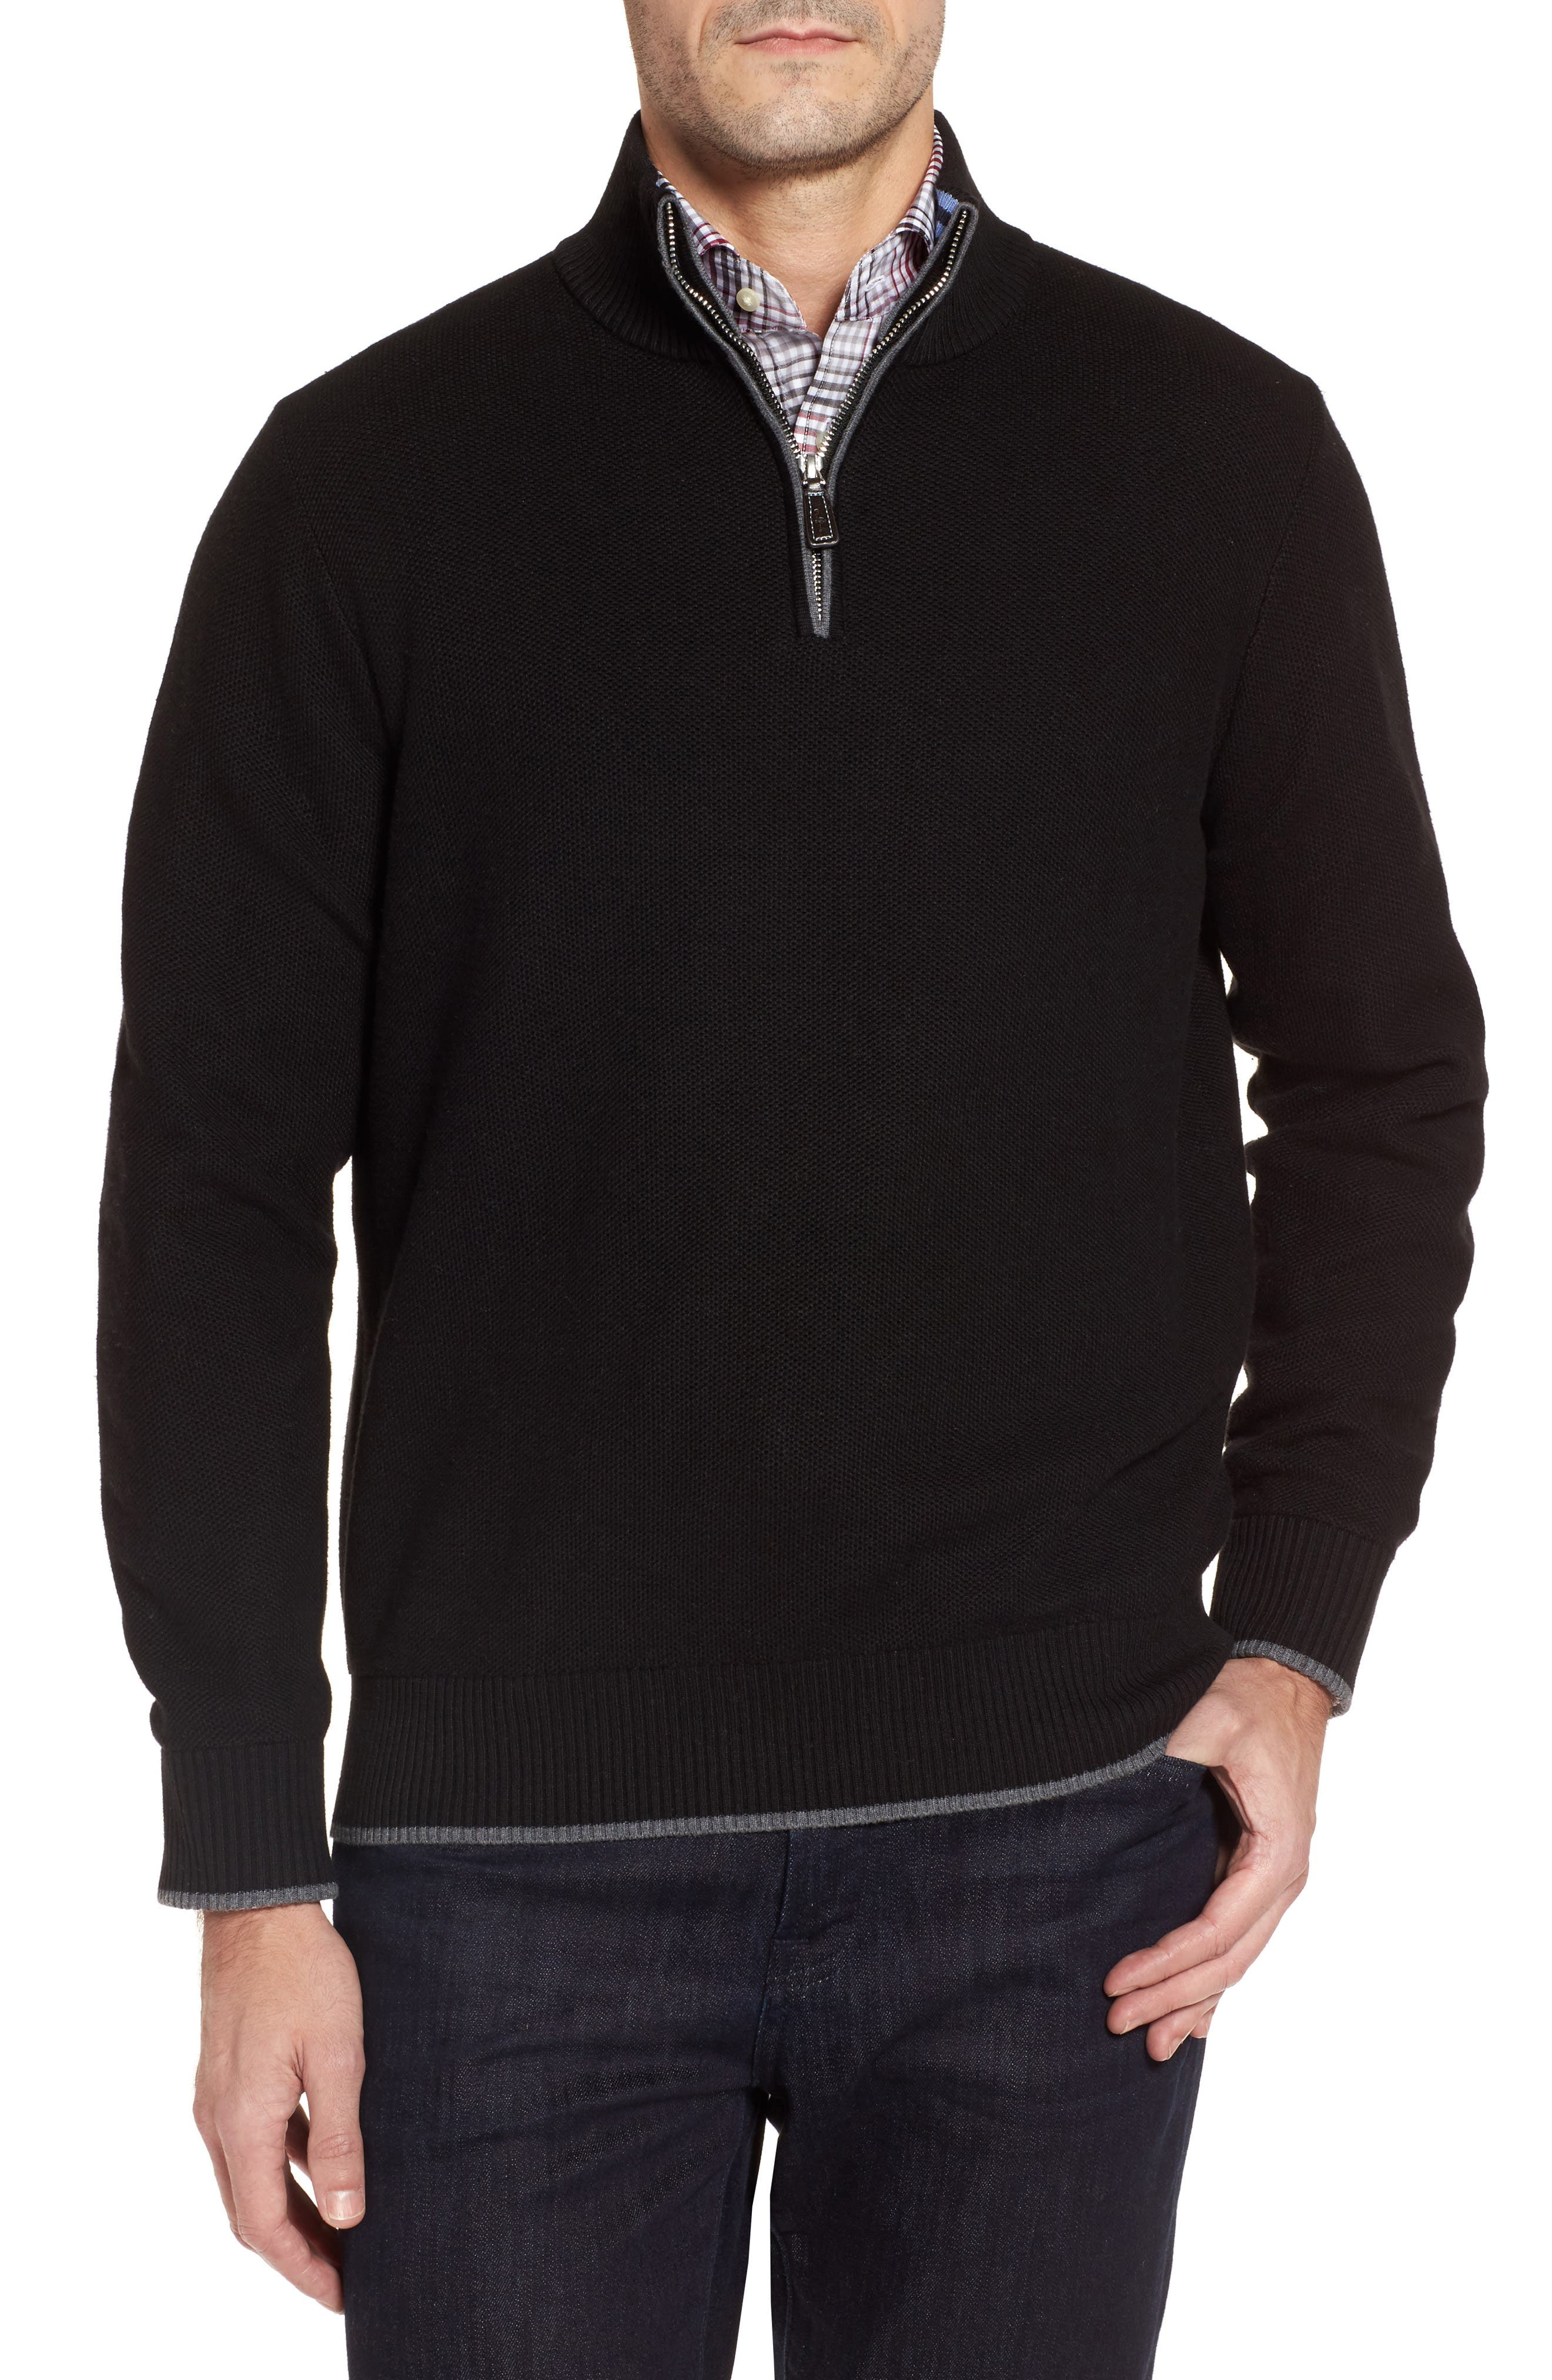 Alternate Image 1 Selected - TailorByrd Lafitte Tipped Quarter Zip Sweater